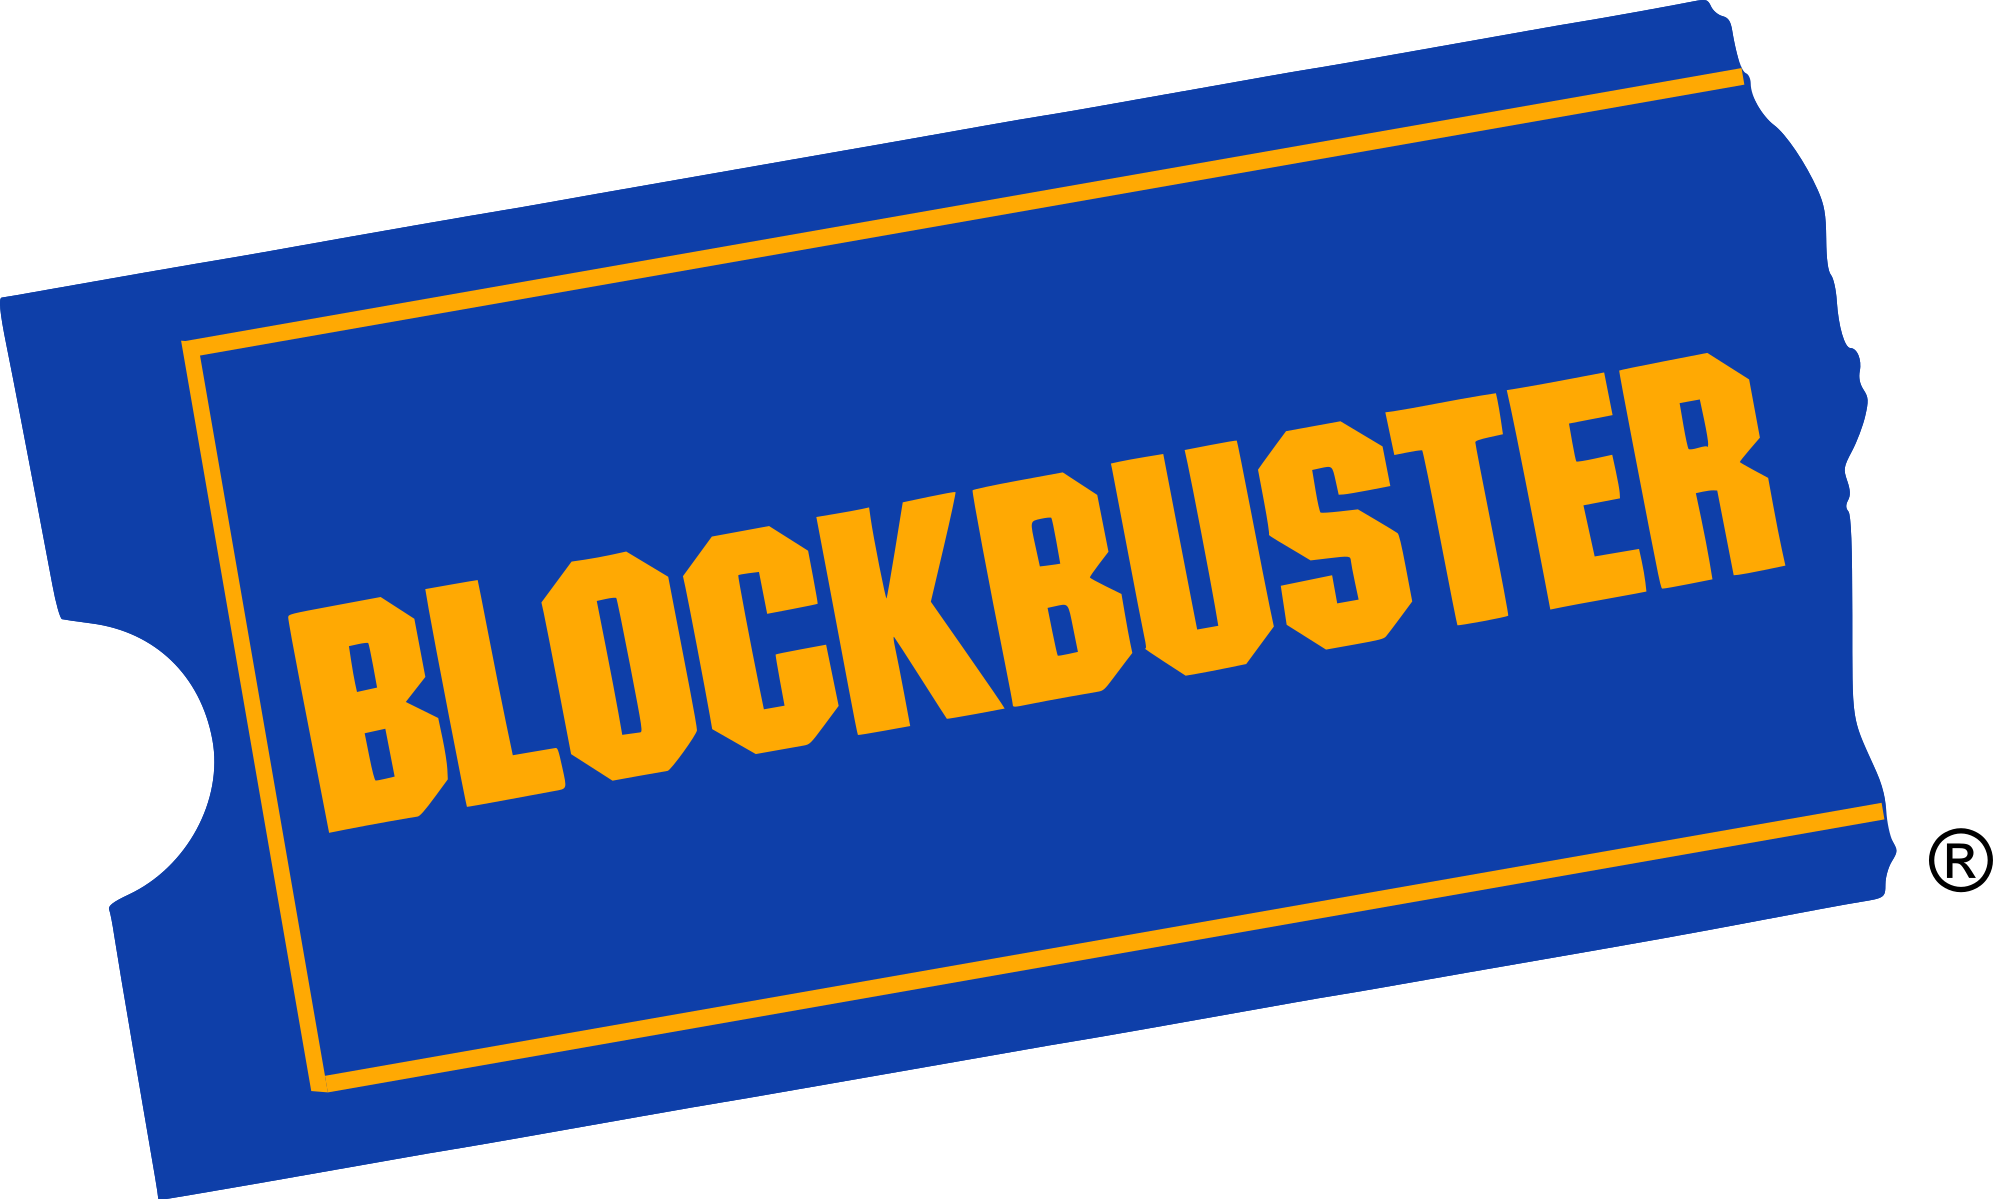 Blockbuster on Demand review